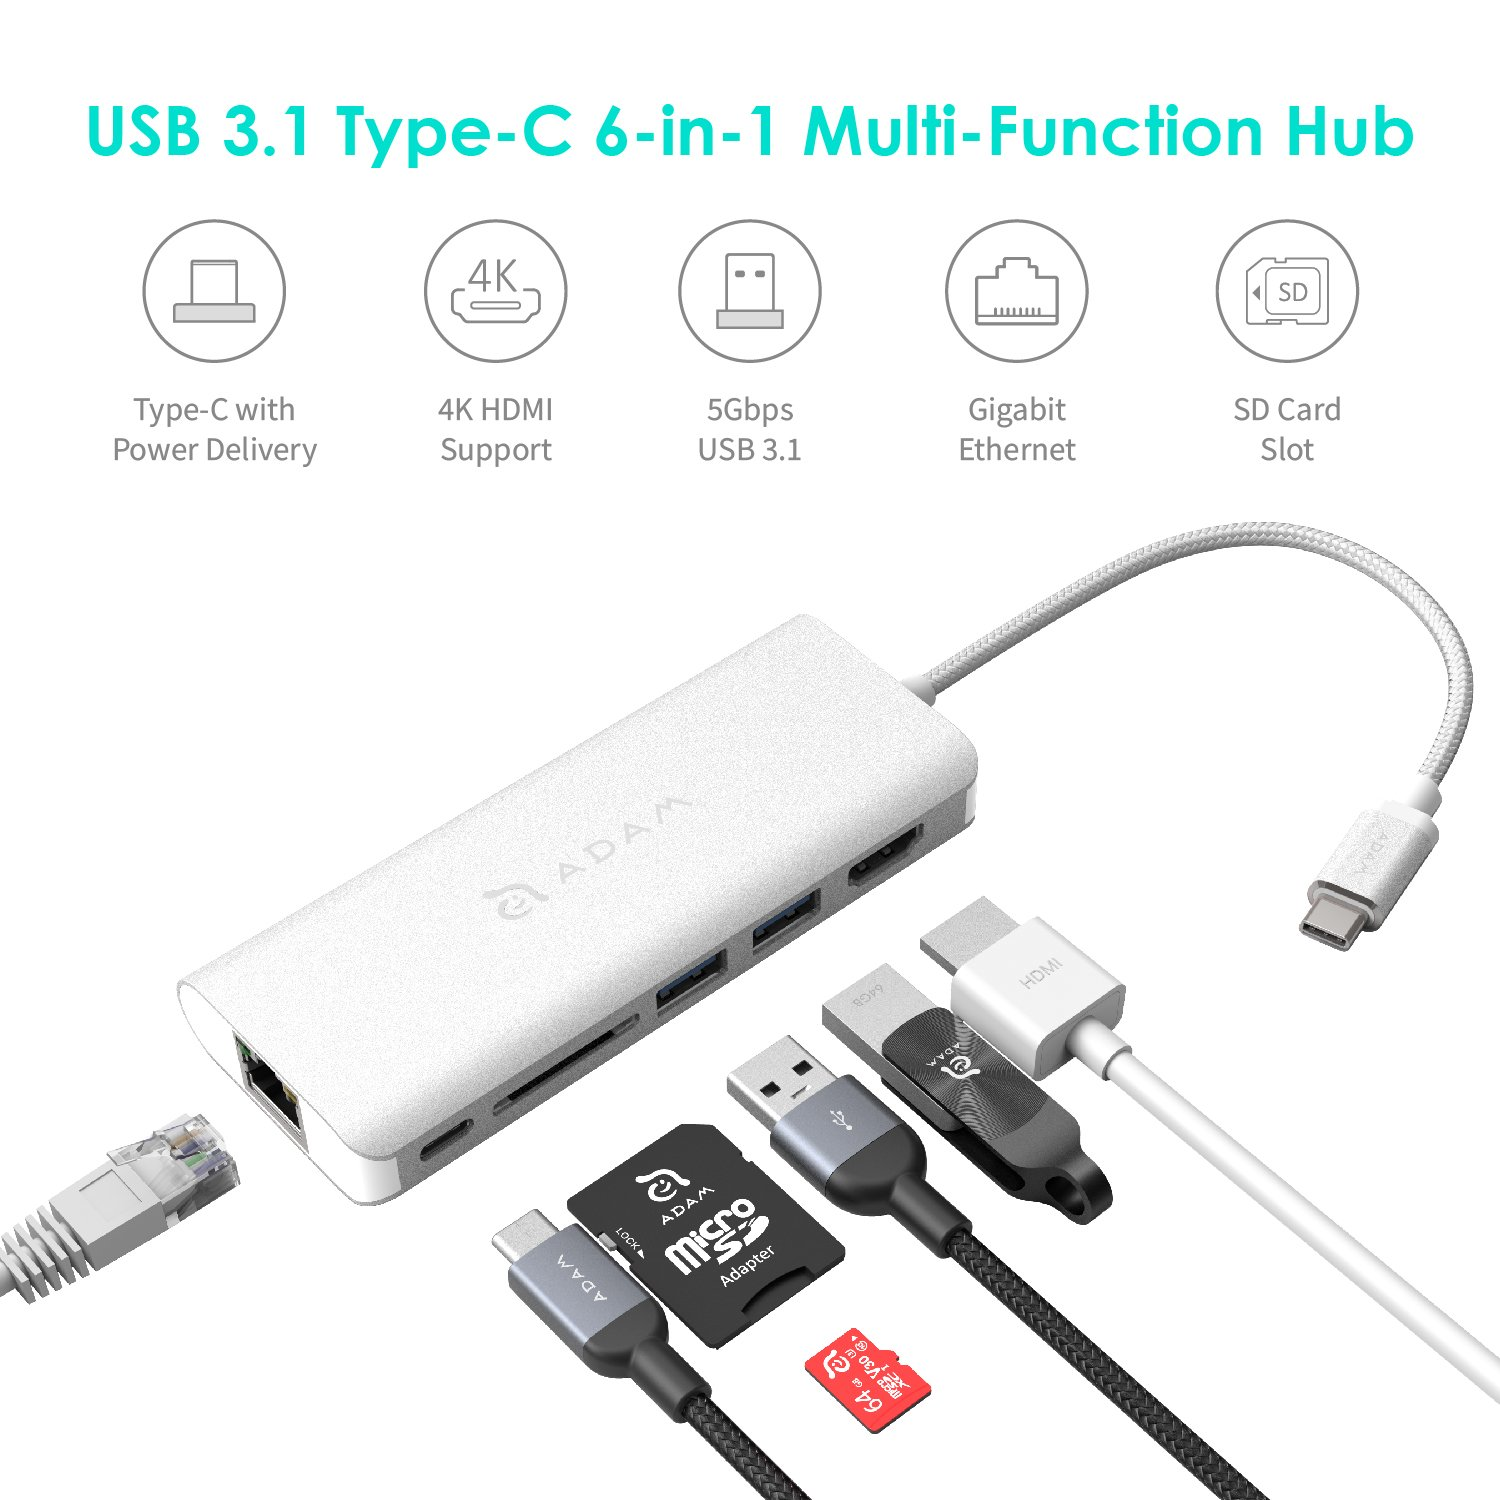 USB Type C Hub Ethernet and HDMI Adapter, with SD Card Reader, Power Charging, 2 Type A Port Compatible for Mac and Windows - Multi Use Docking Station Dongle by Adam Elements - Silver